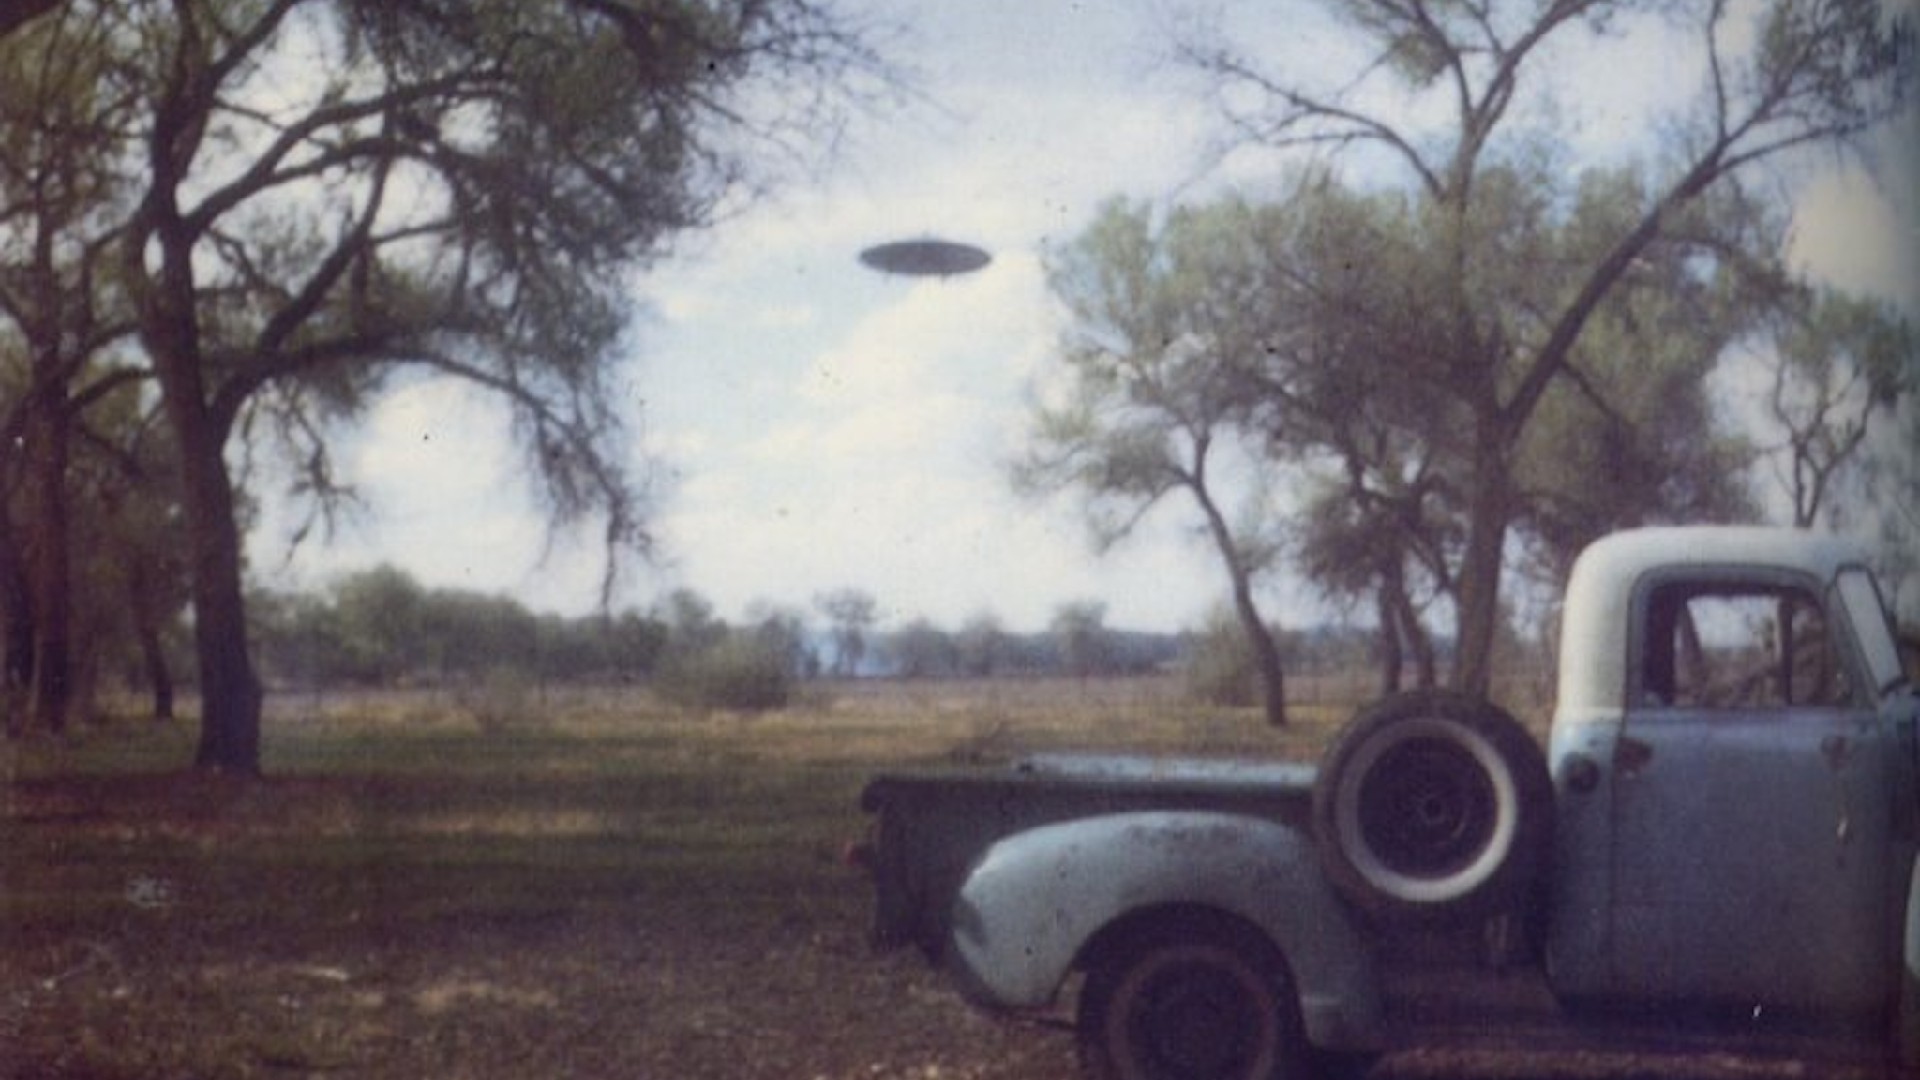 Ronnie van Hout, 'Found UFO image', 2015 Archival inkjet print on Hahnemuhle Photo Rag Baryta 45 x60 cm. Courtesy of Bus Projects, Melbourne.